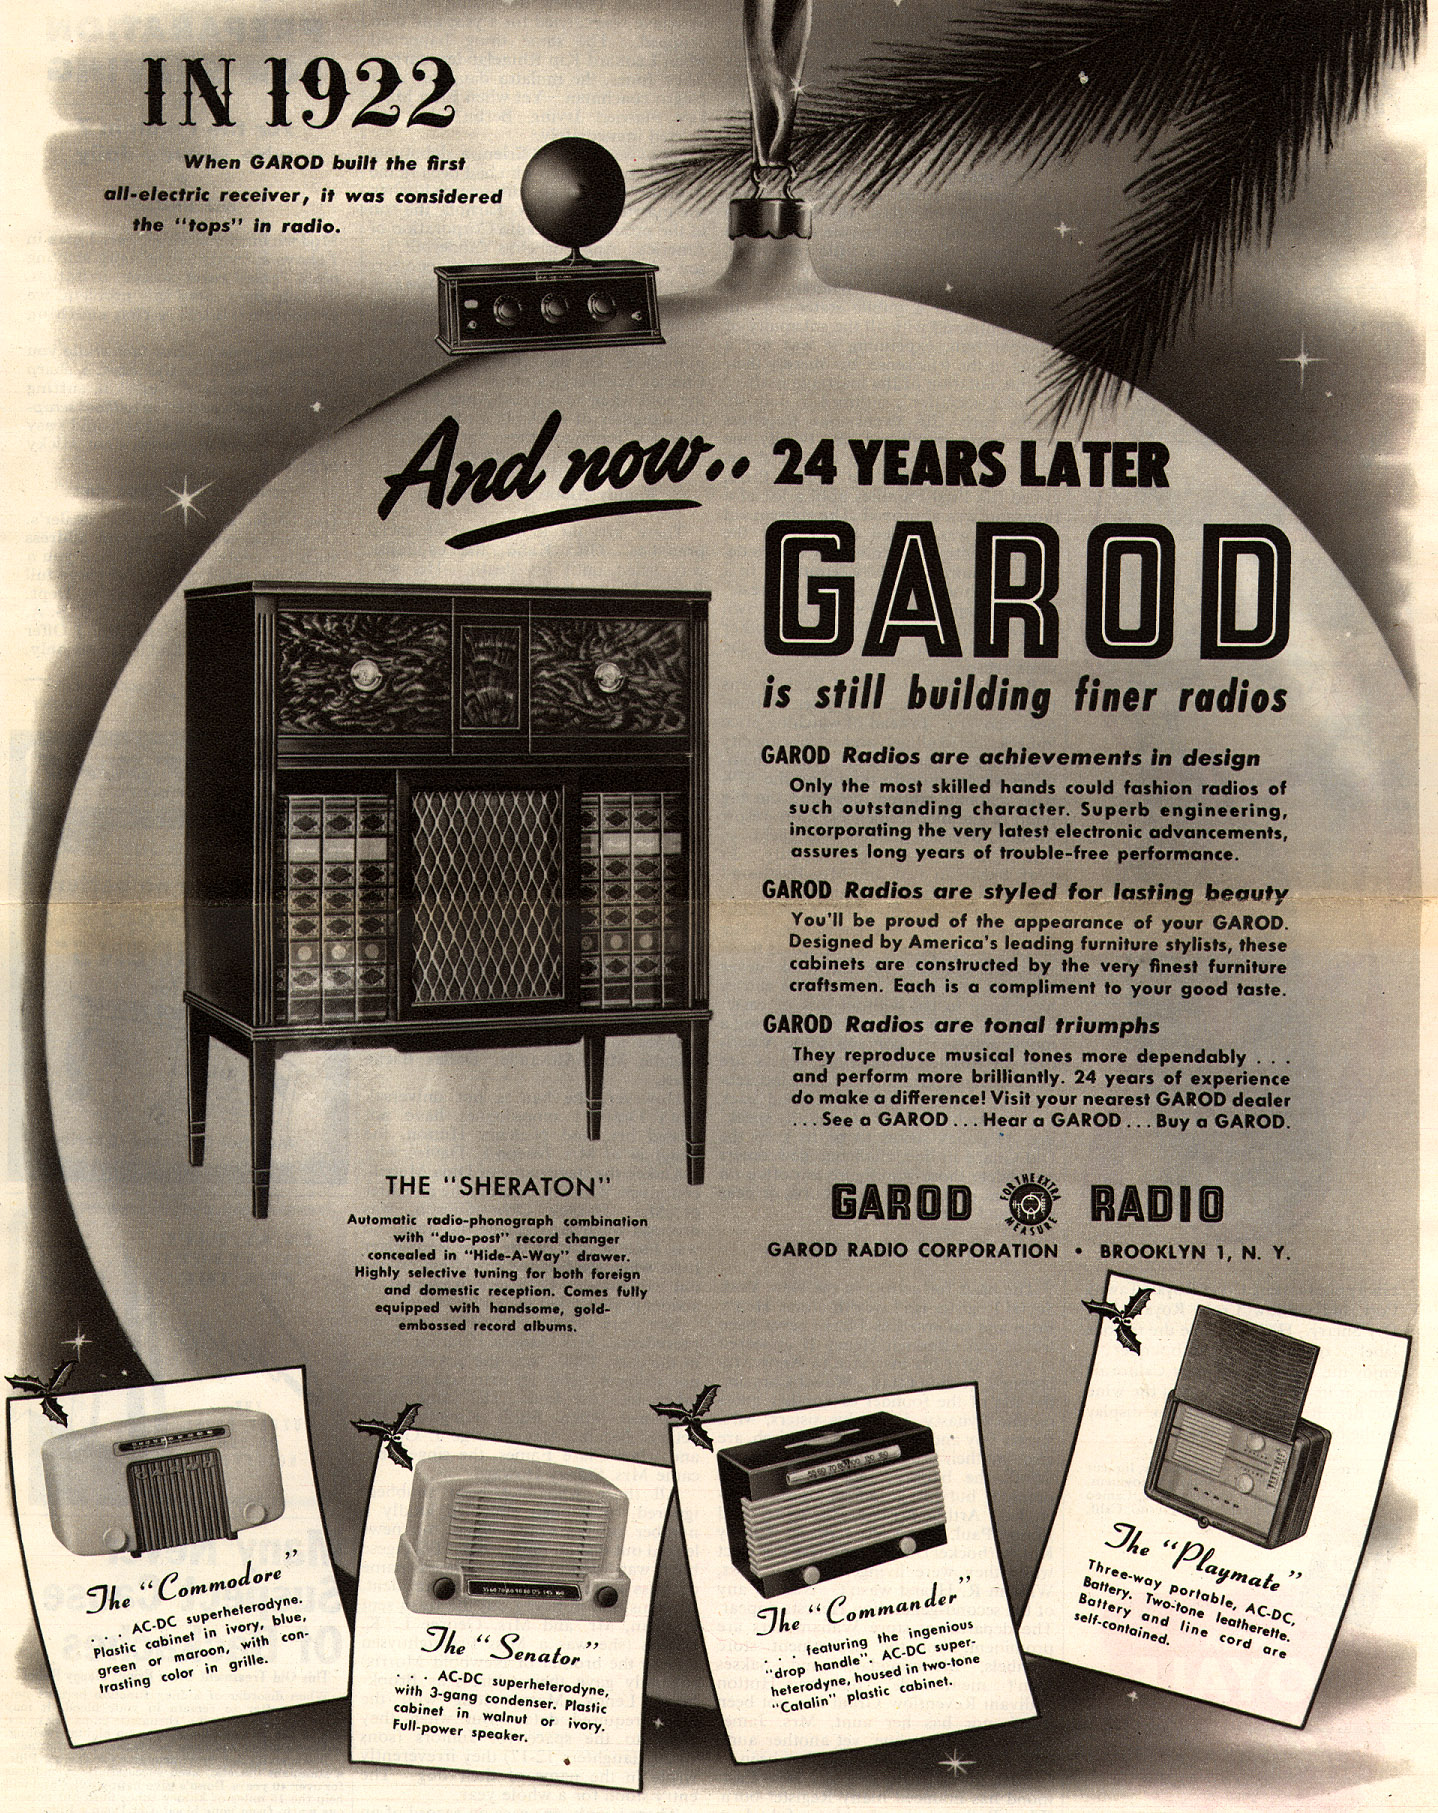 In_1922_When_Garod_Built_the_First_All-Electric_Receiver